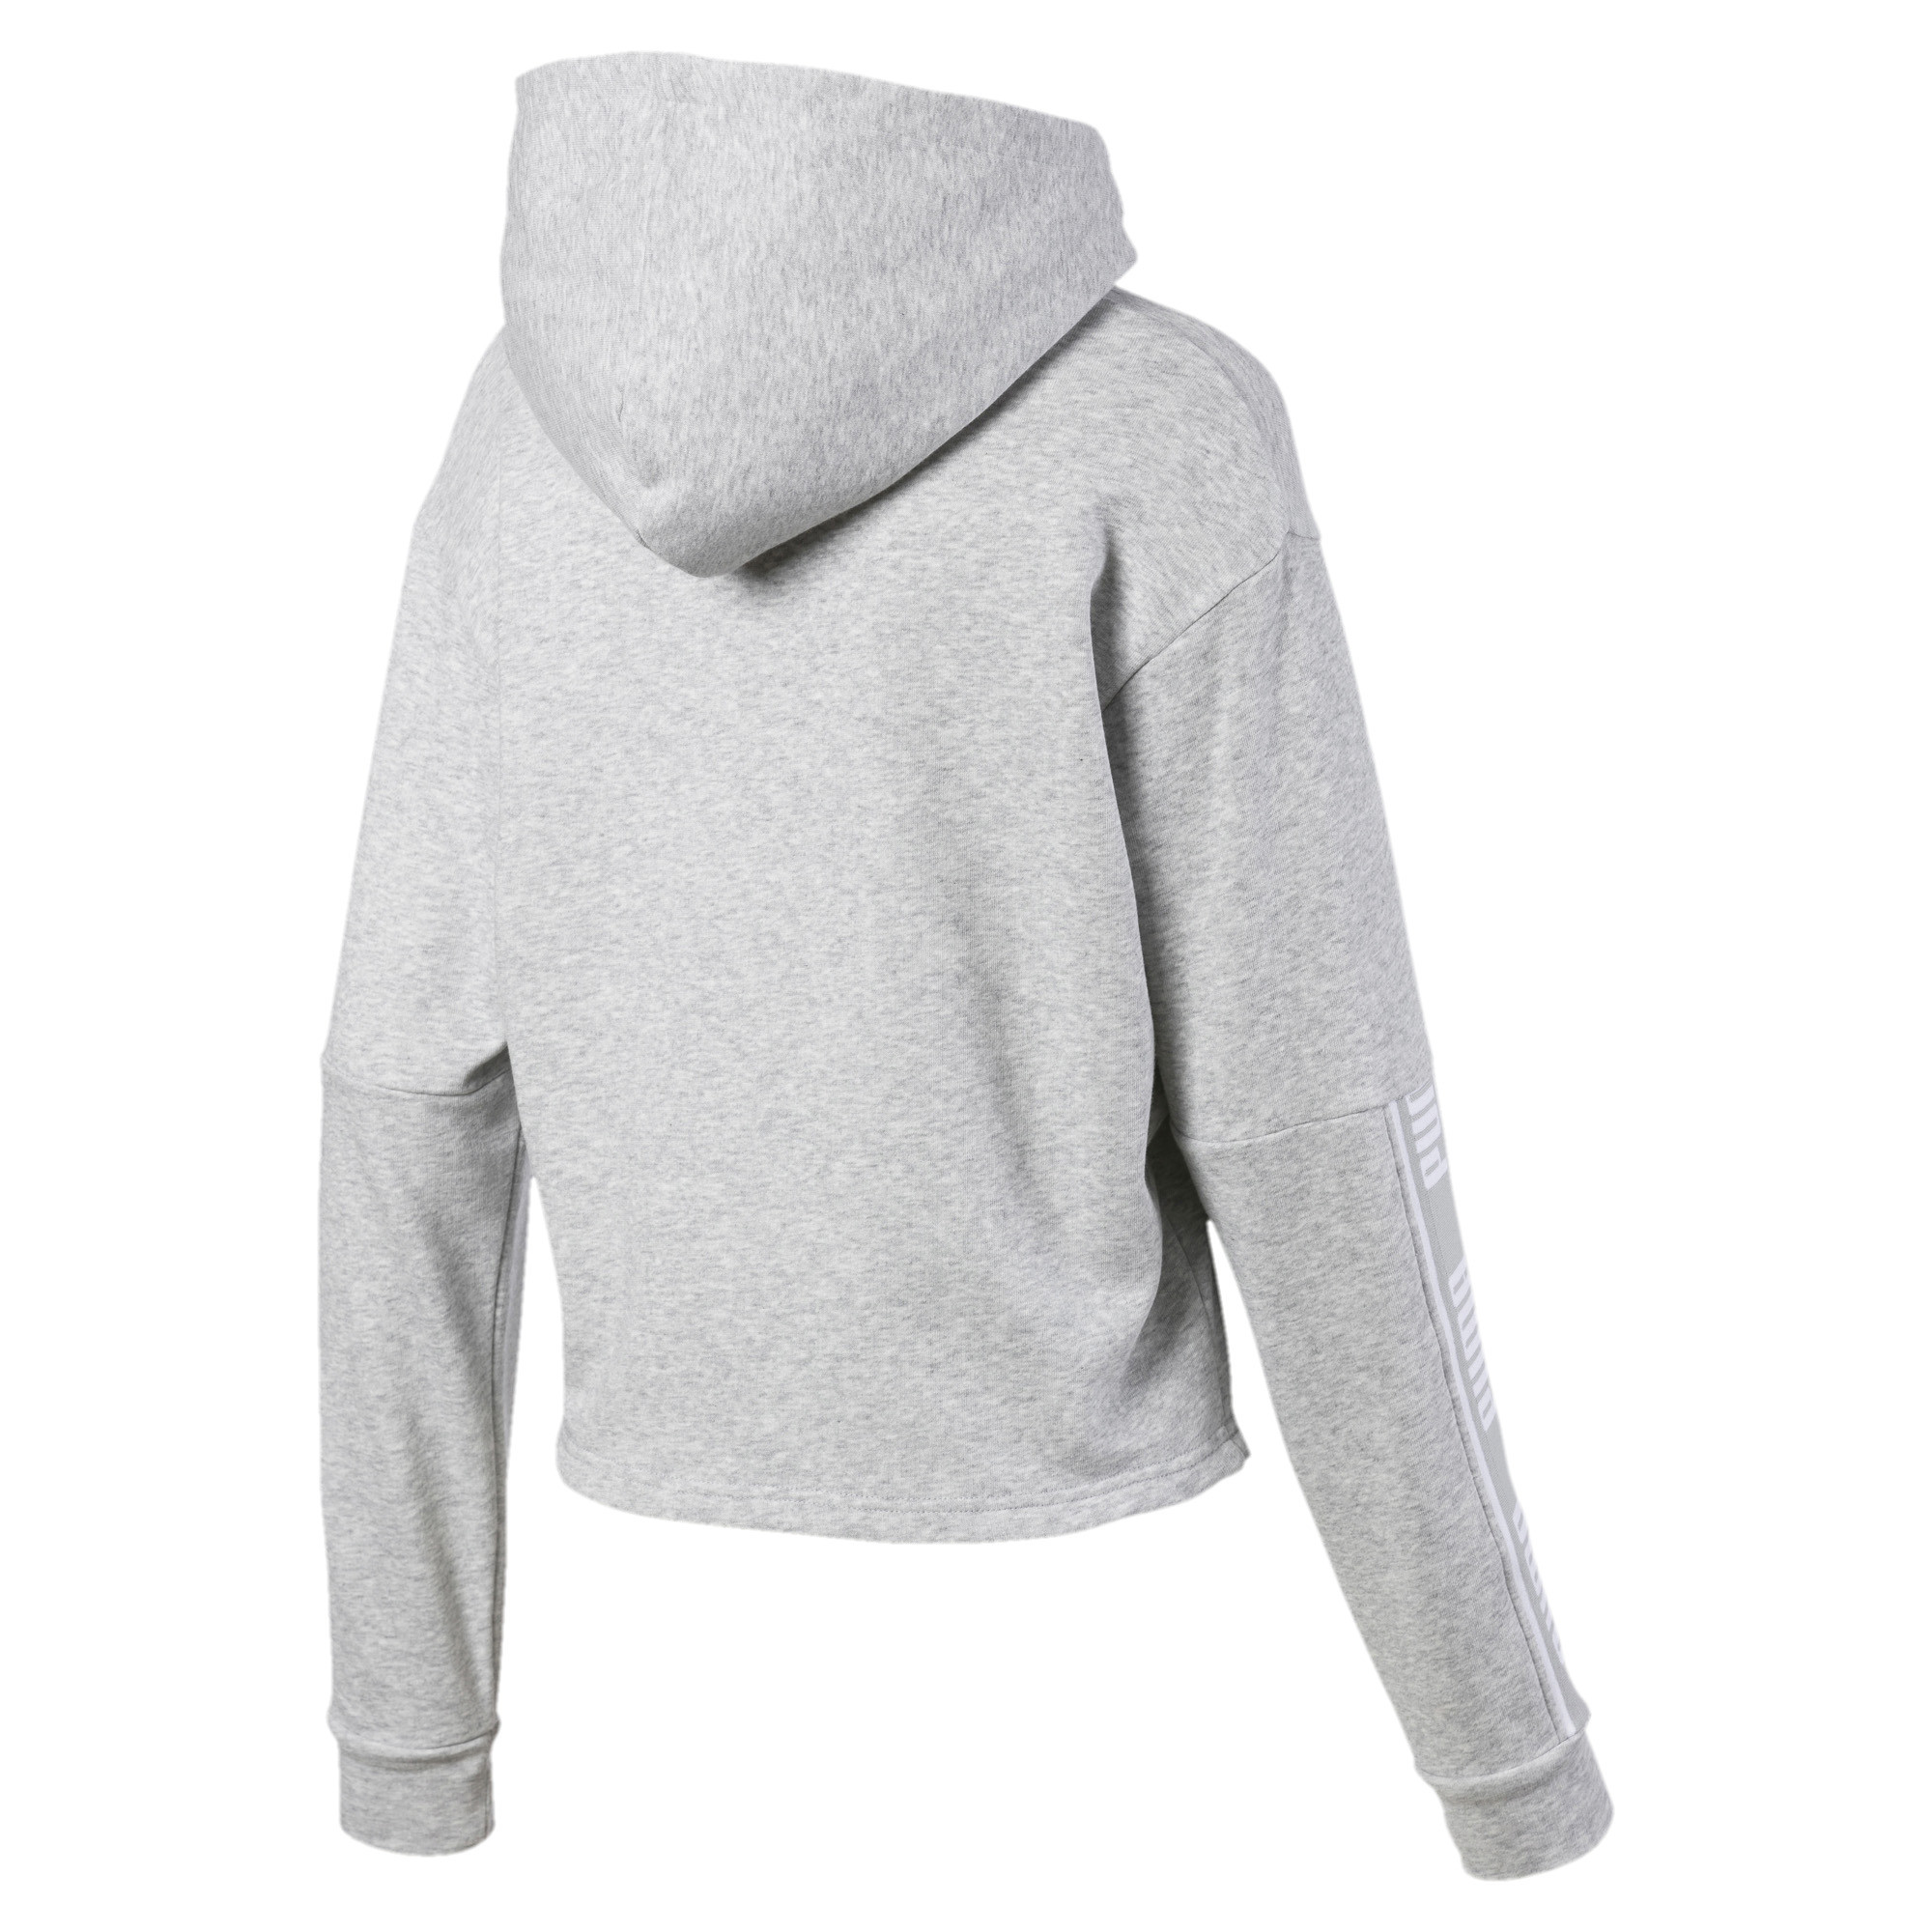 PUMA-Amplified-Women-039-s-Cropped-Hoodie-Women-Sweat-Basics thumbnail 13